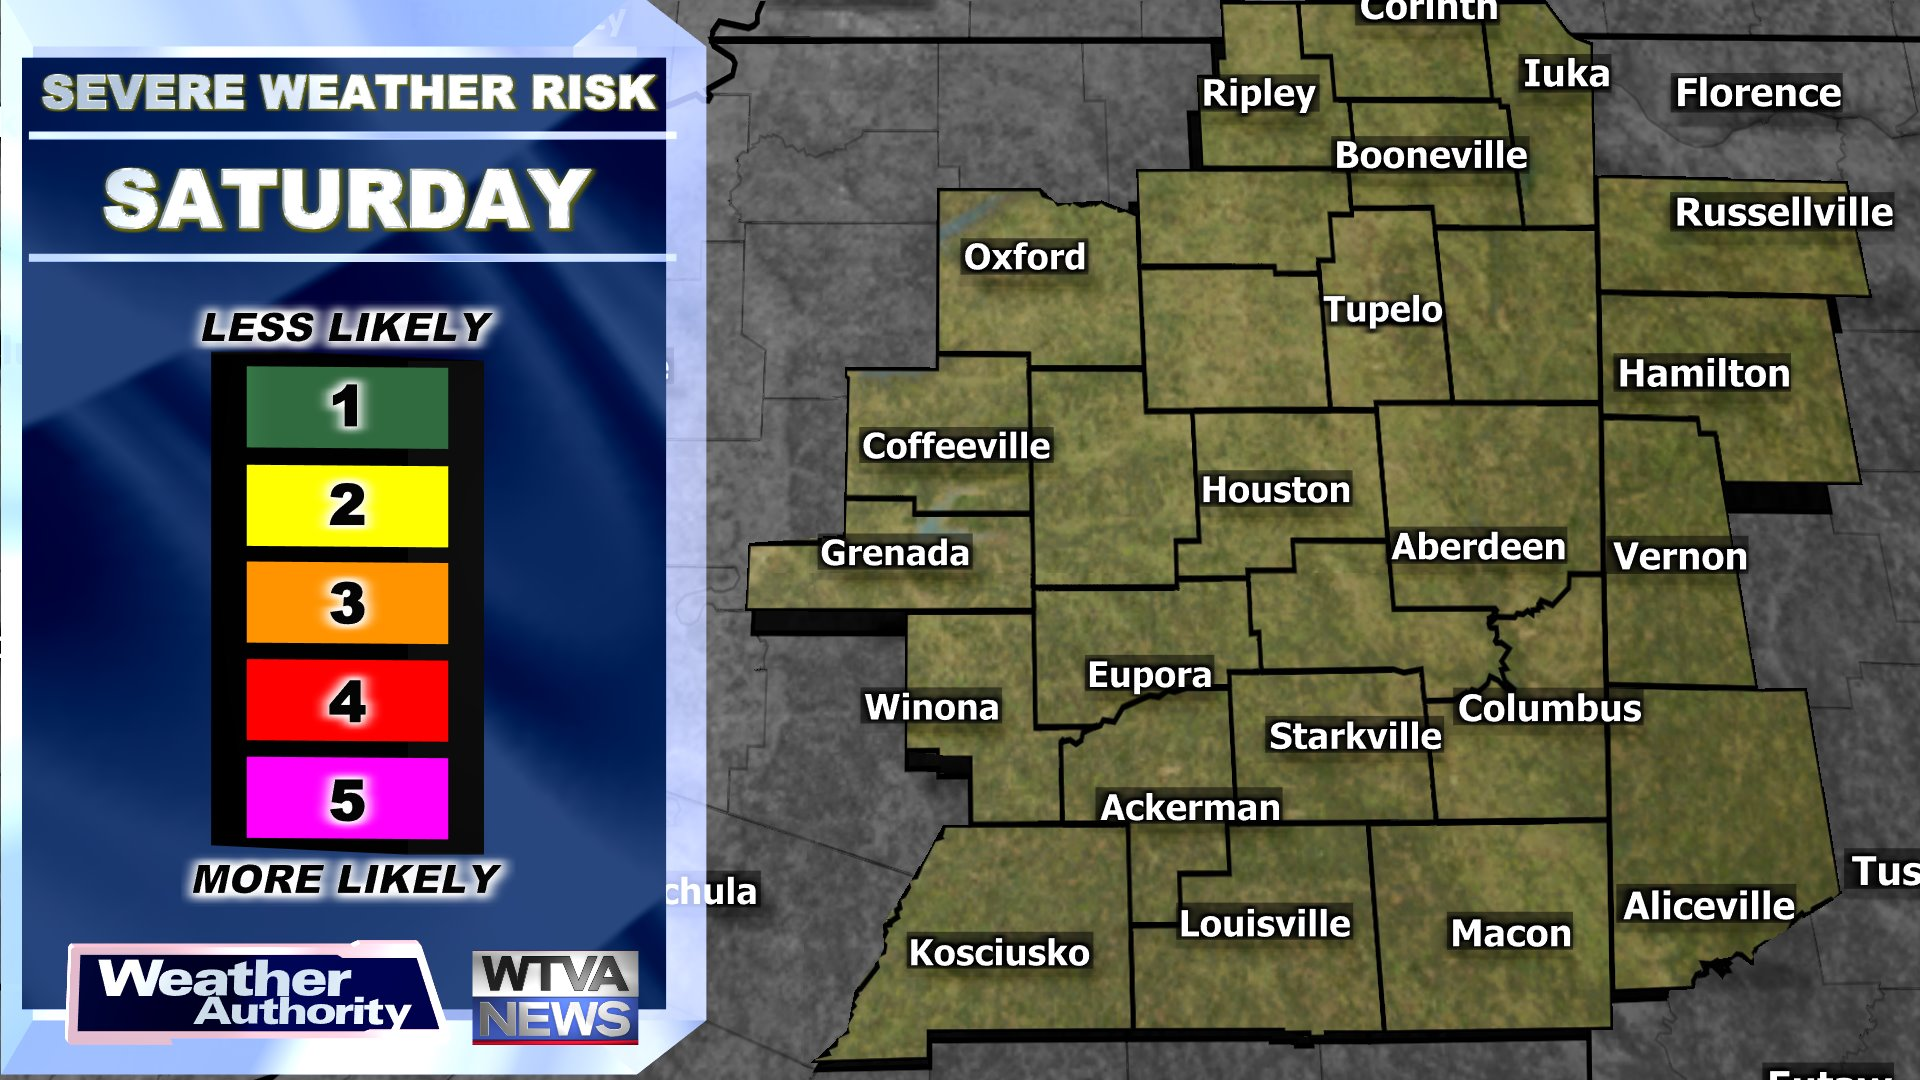 Tomorrow's Severe Weather Risk